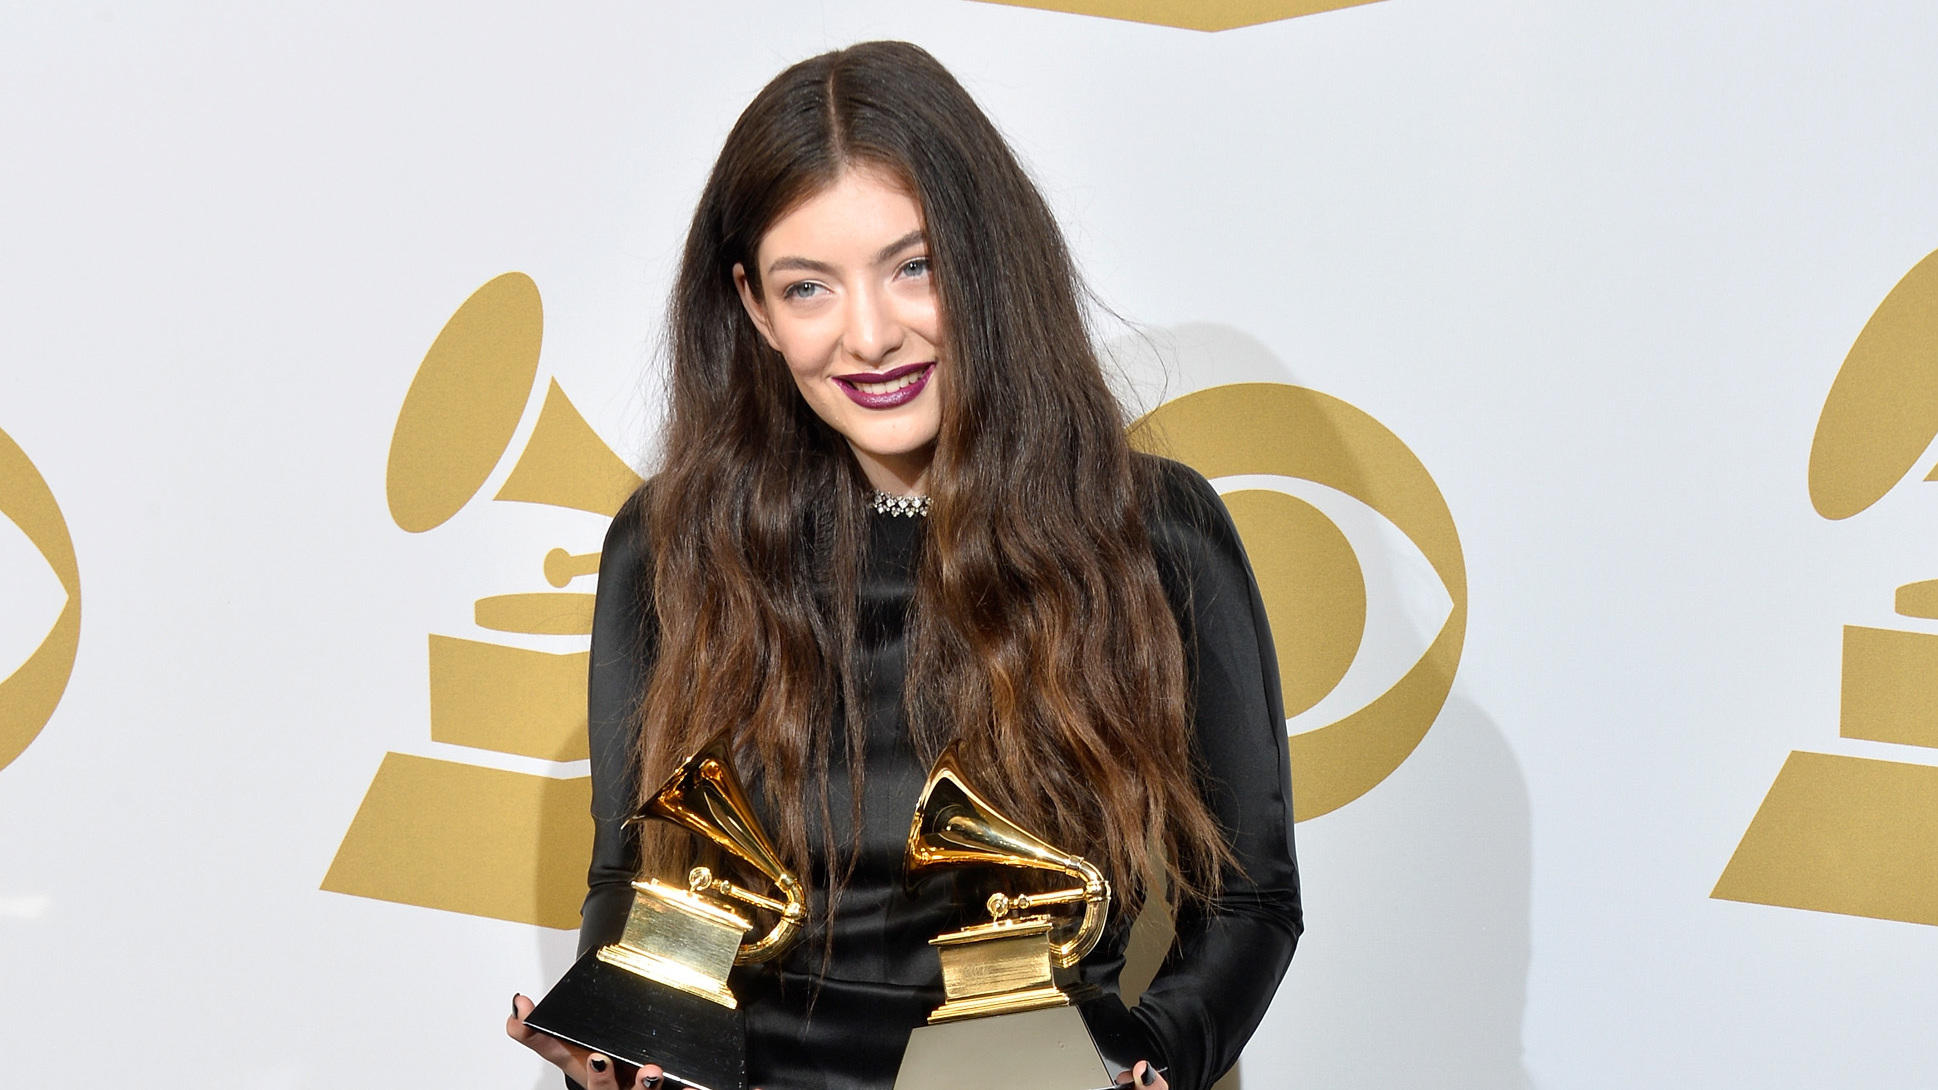 Women Are Staggeringly Underrepresented in Pop Music, New Study Shows